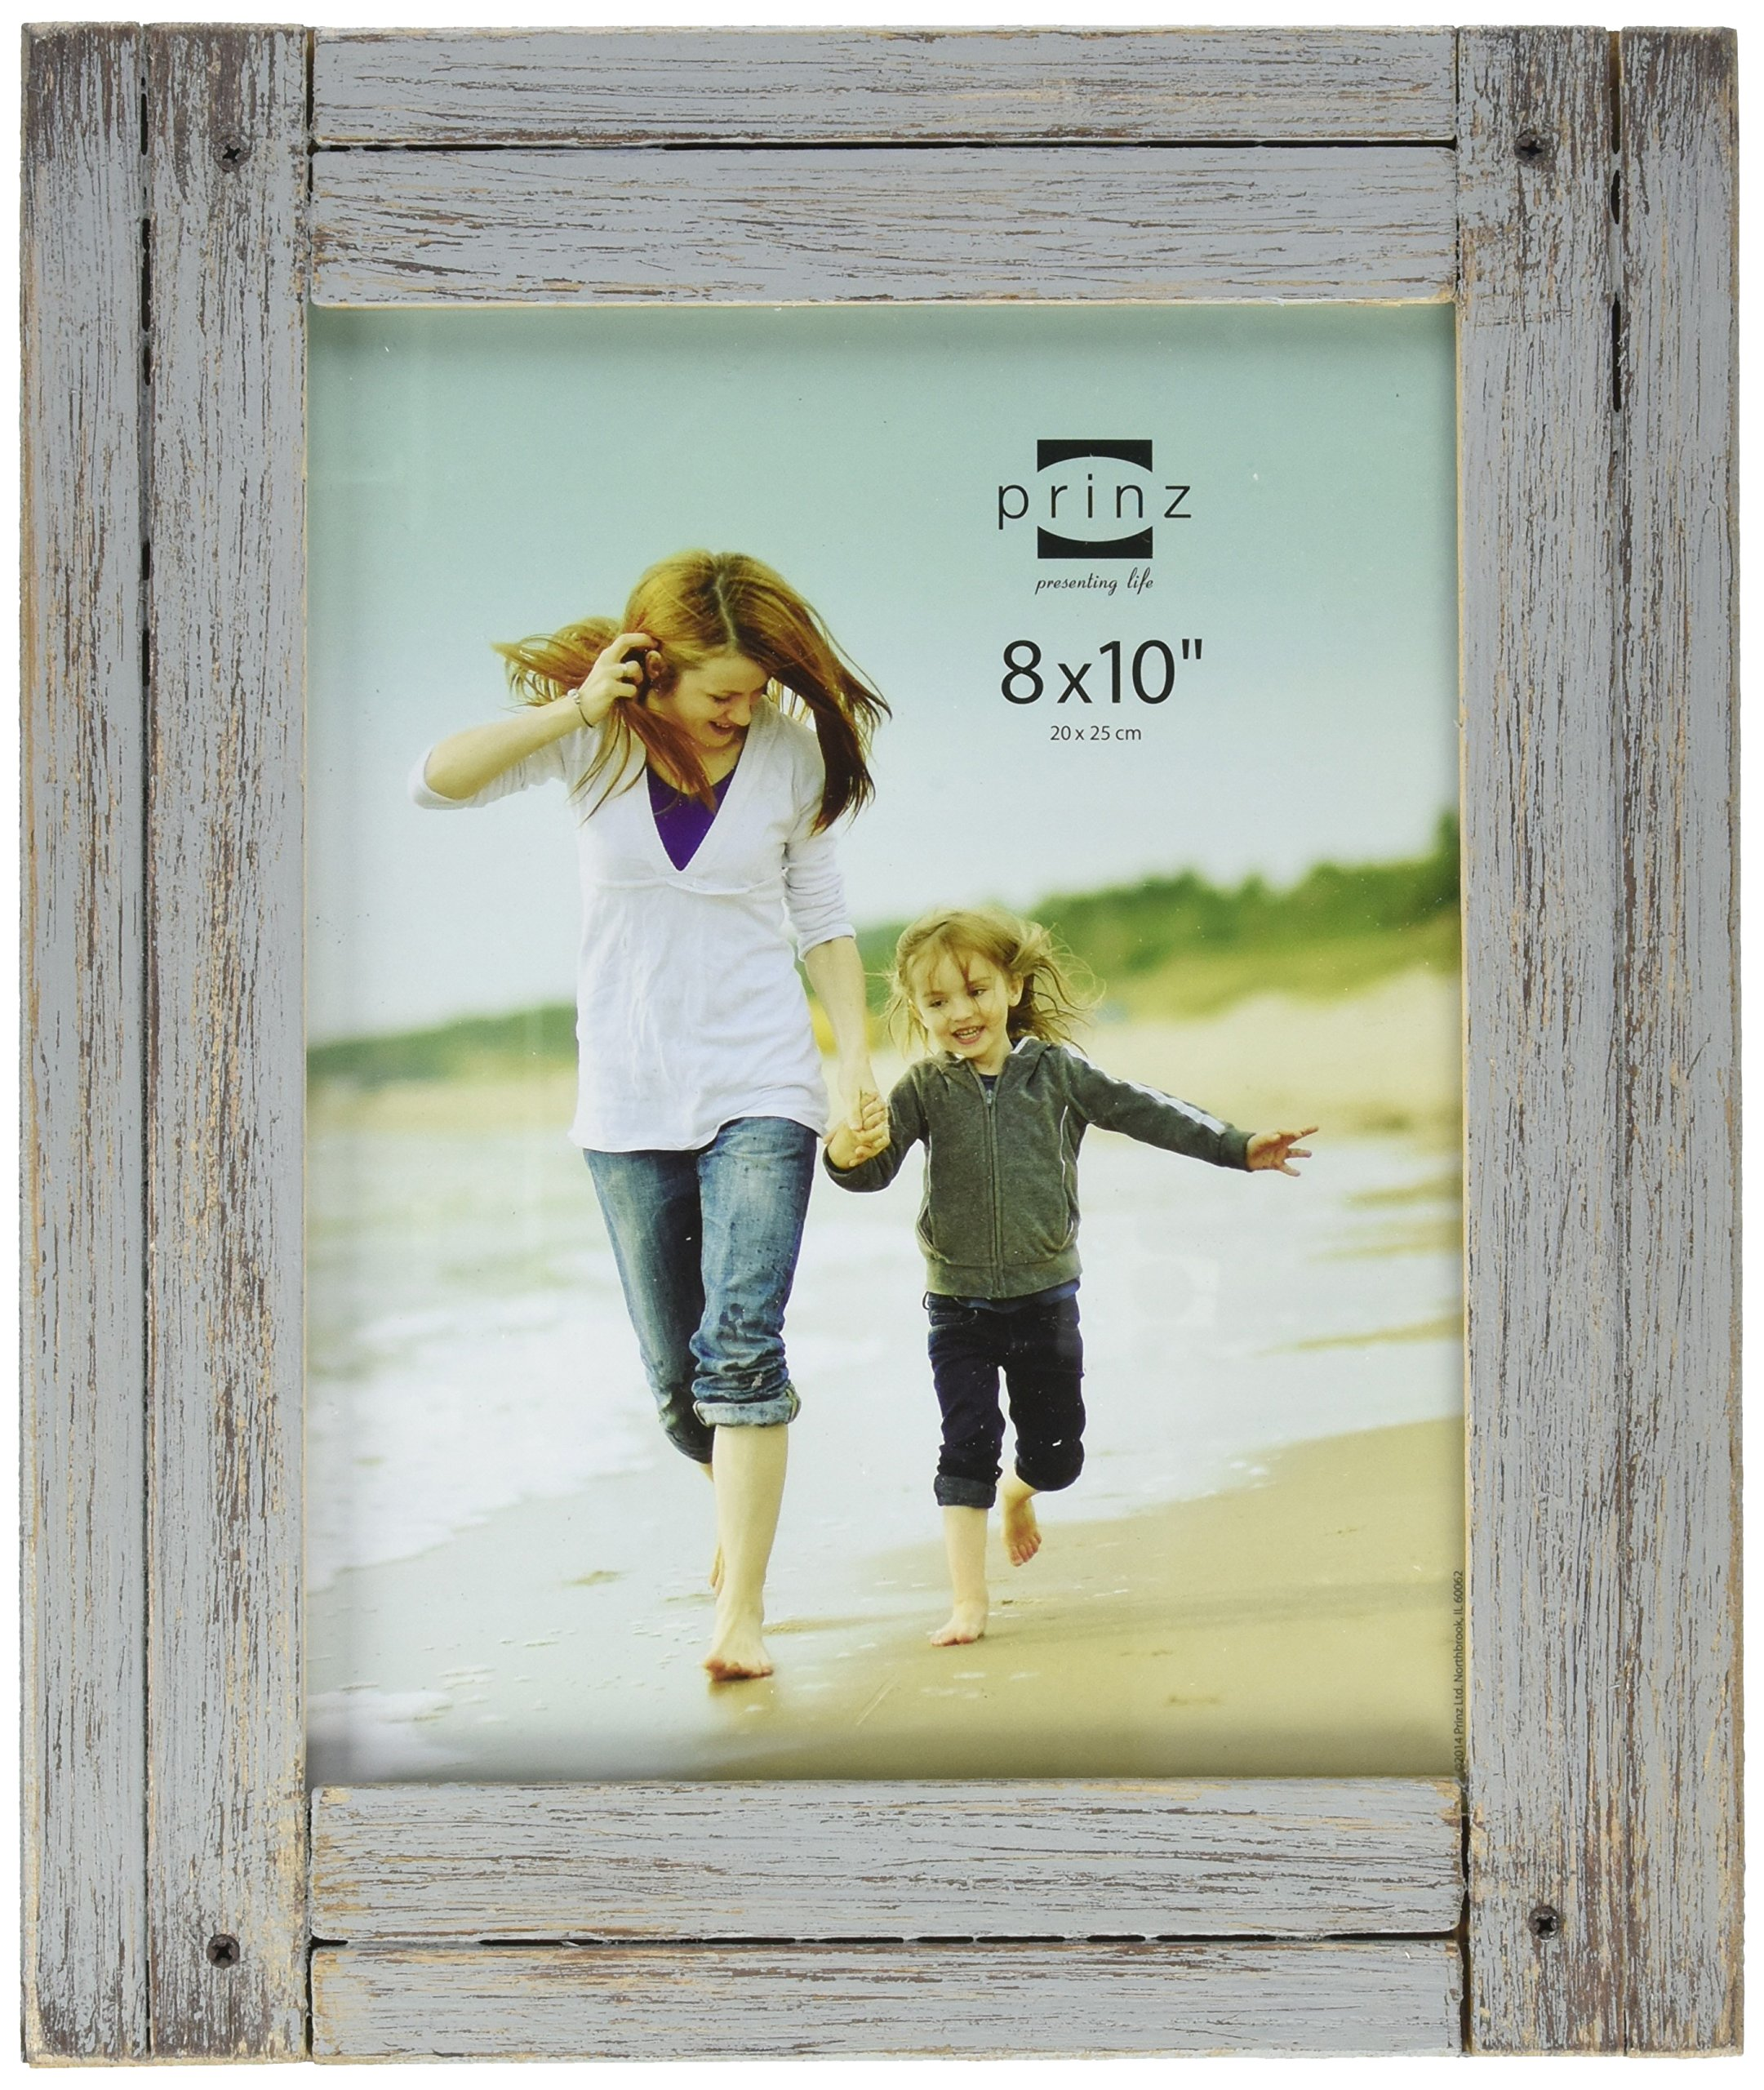 af36e3e2d98 Best Rated in Picture Frames   Helpful Customer Reviews - Amazon.com